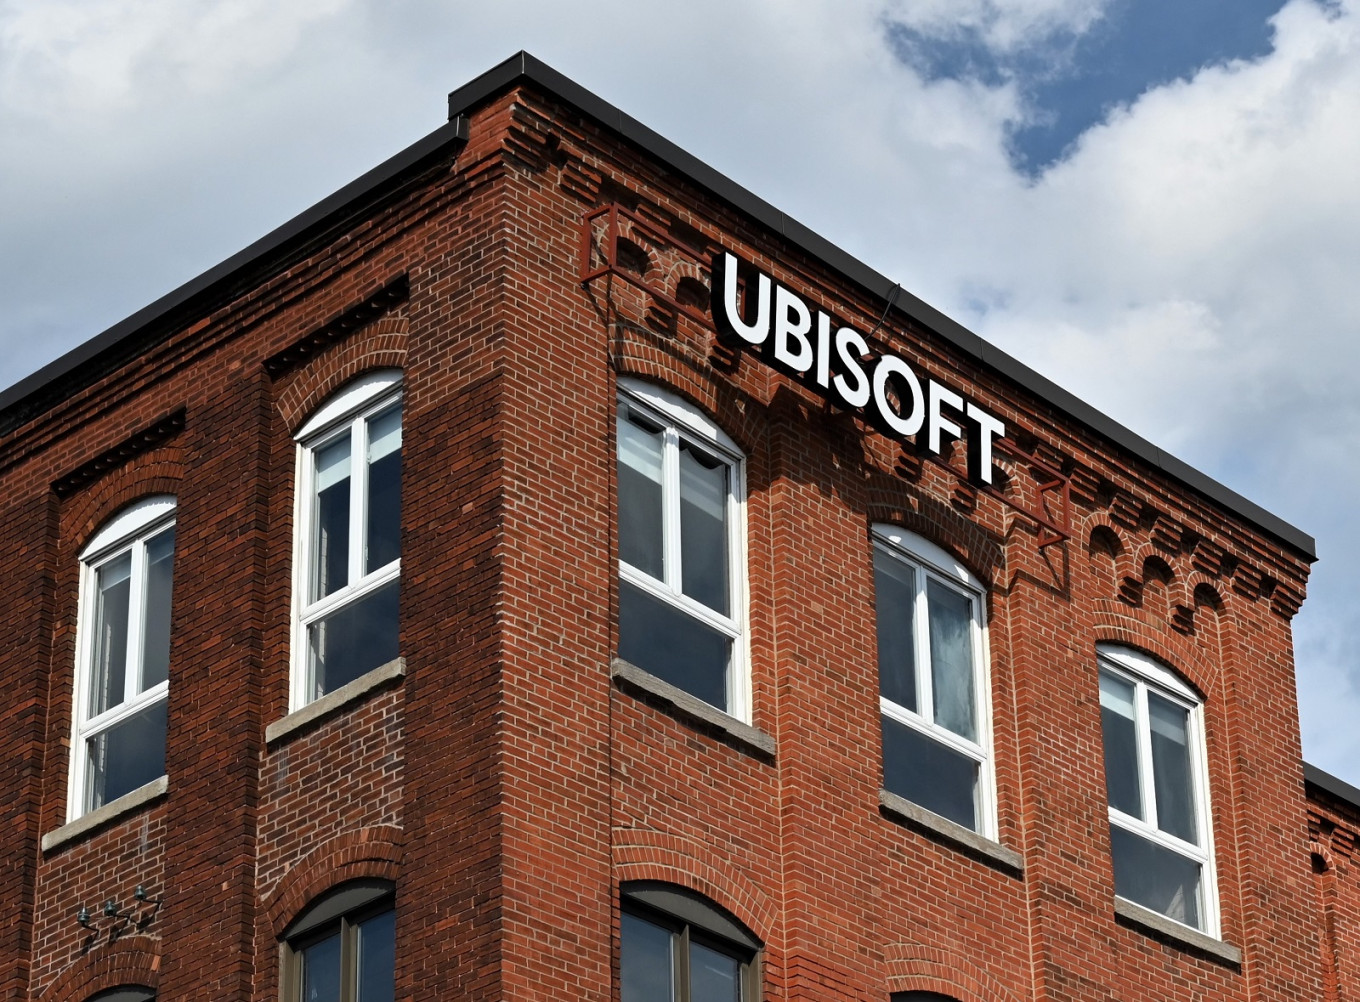 Quarter of employees at gaming firm Ubisoft report misconduct